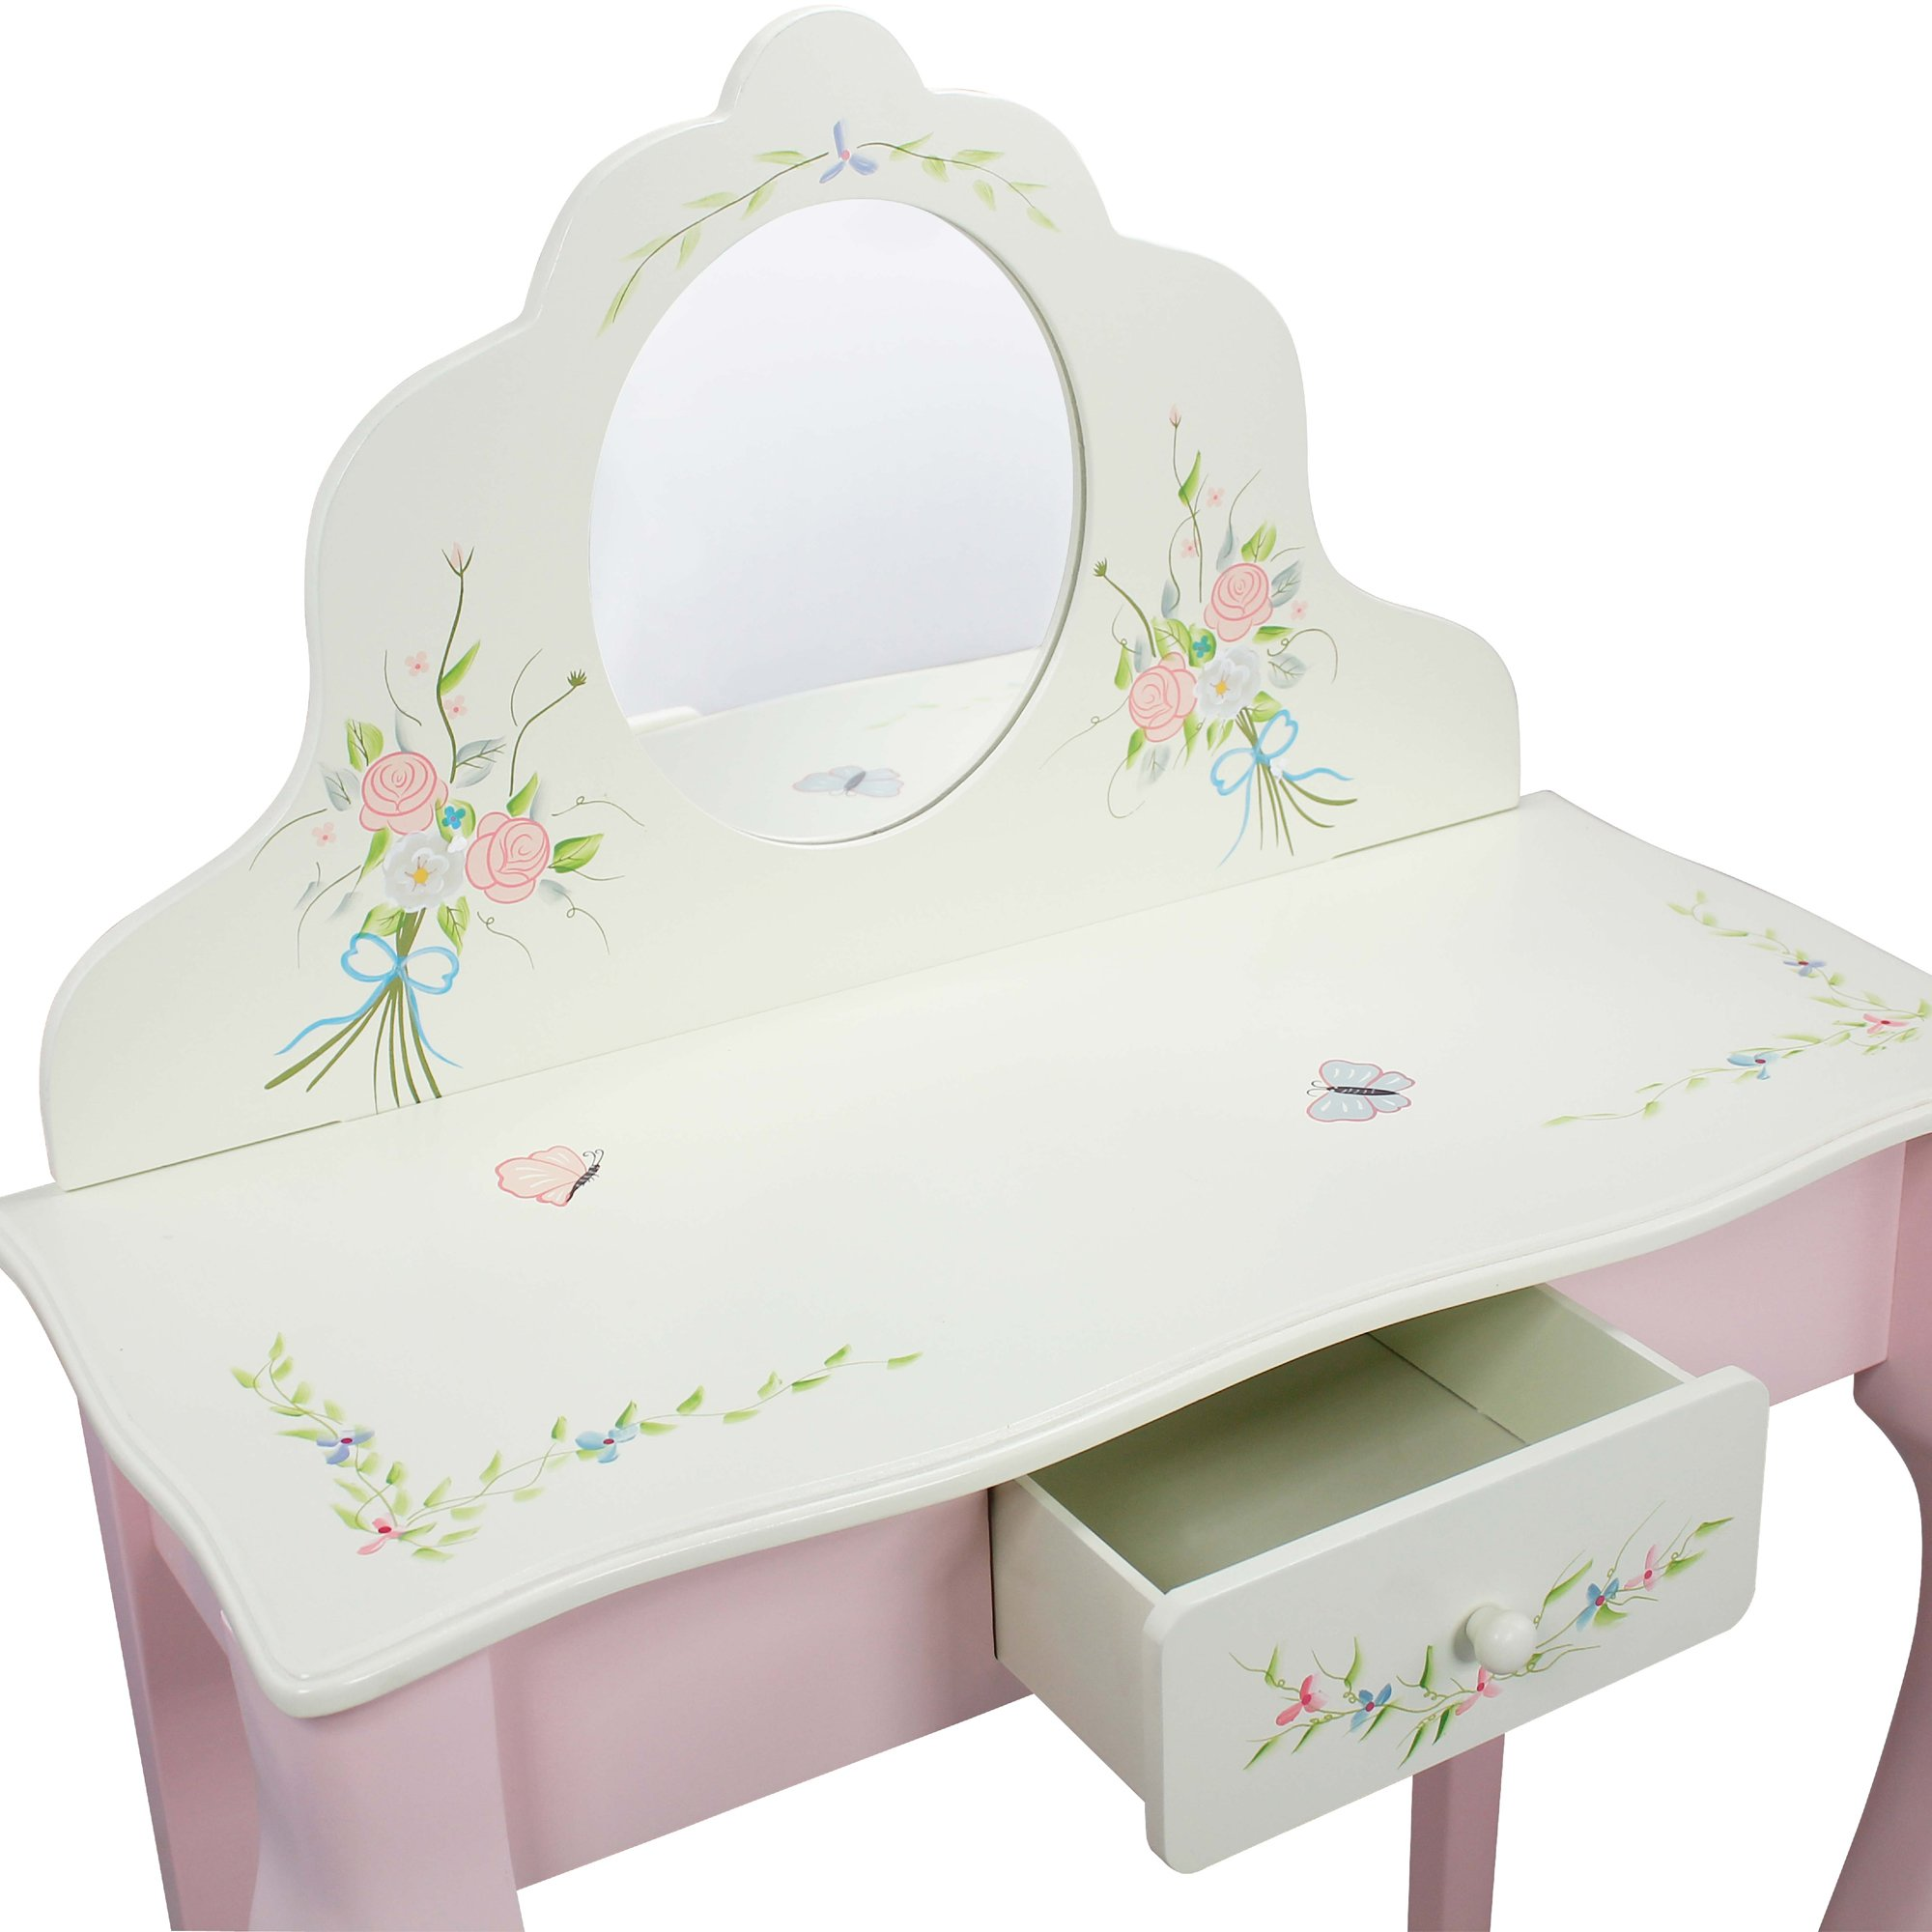 Fantasy Fields - Bouquet Thematic Kids Classic Vanity Table and Stool Set with Mirror   Imagination Inspiring Hand Crafted & Hand Painted Details   Non-Toxic, Lead Free Water-based Paint by Teamson Design Corp (Image #6)